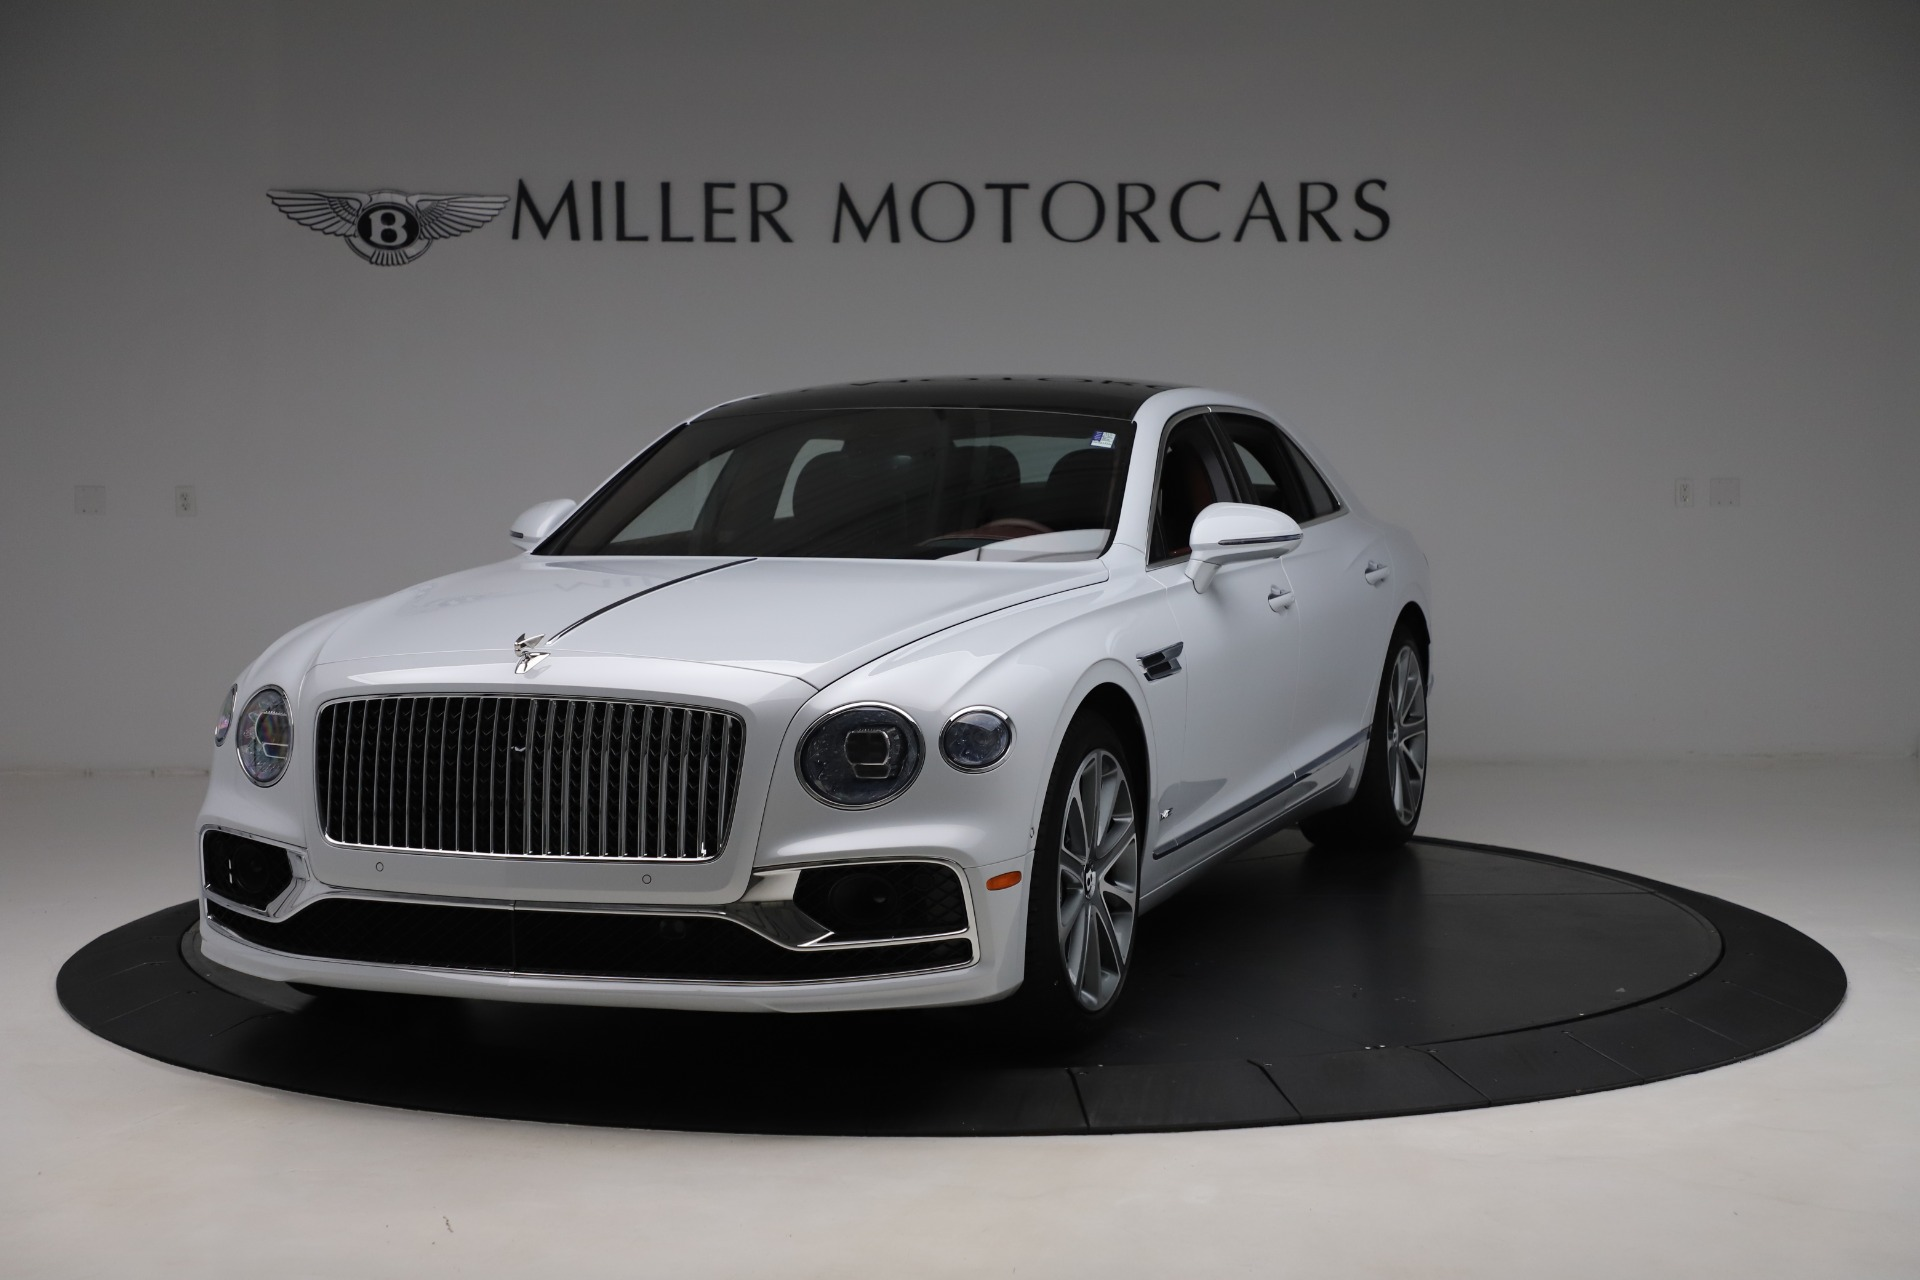 Used 2020 Bentley Flying Spur W12 for sale $259,900 at Pagani of Greenwich in Greenwich CT 06830 1